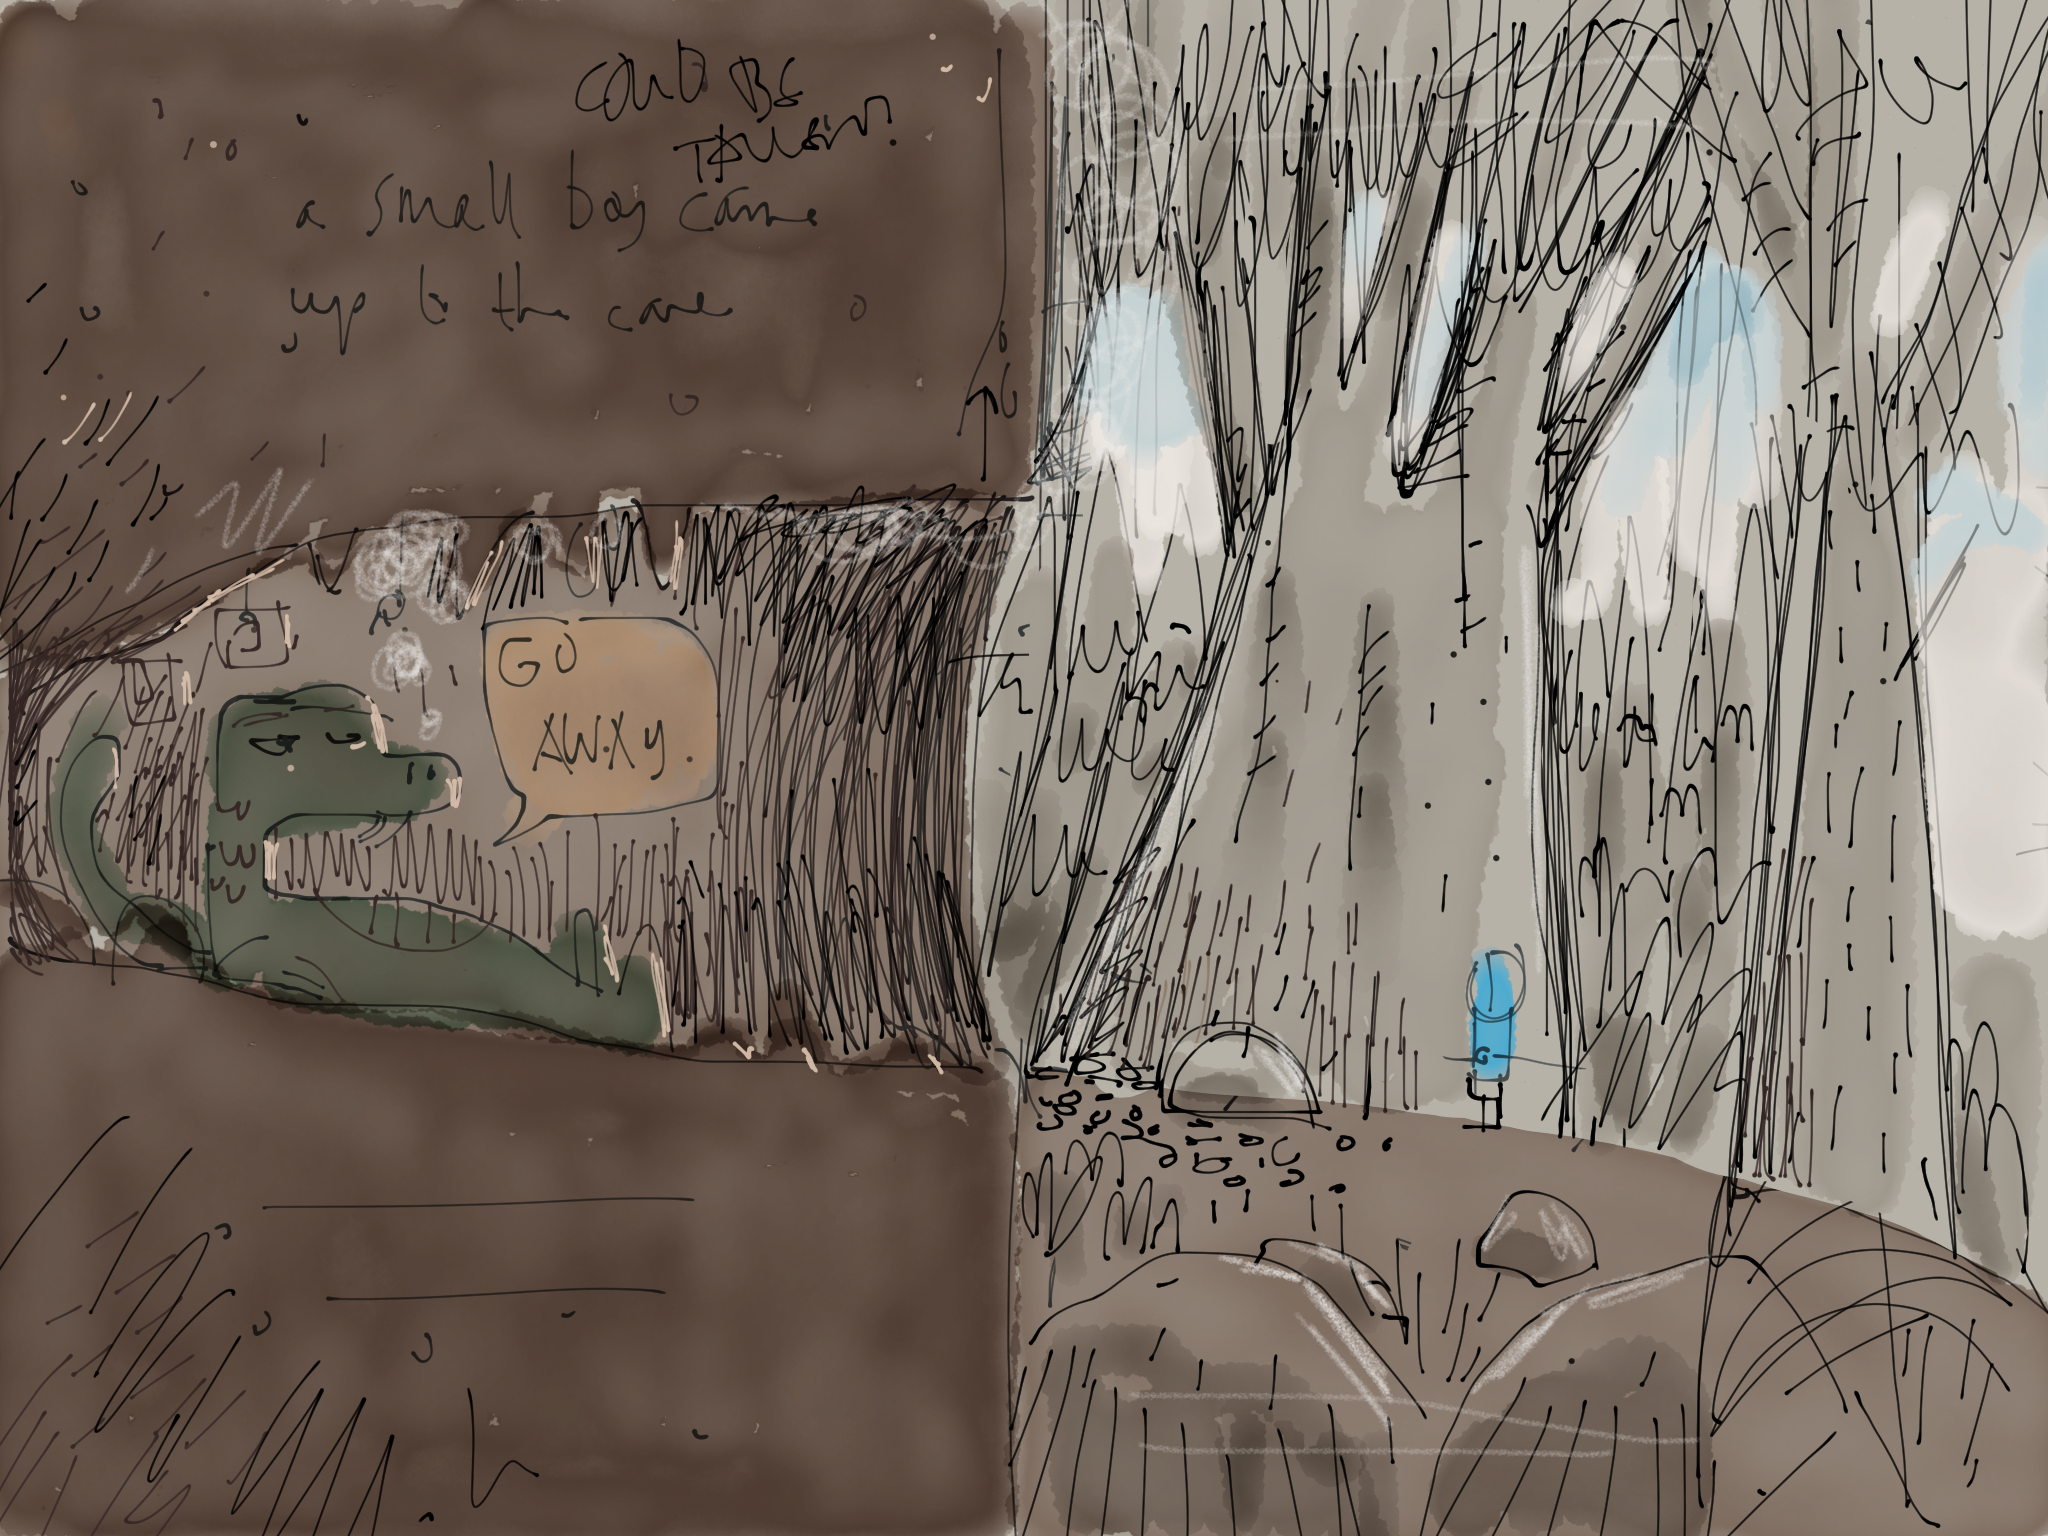 Some early designs of the cave had a cross-section approach. Decided against it because there's little mystery here.